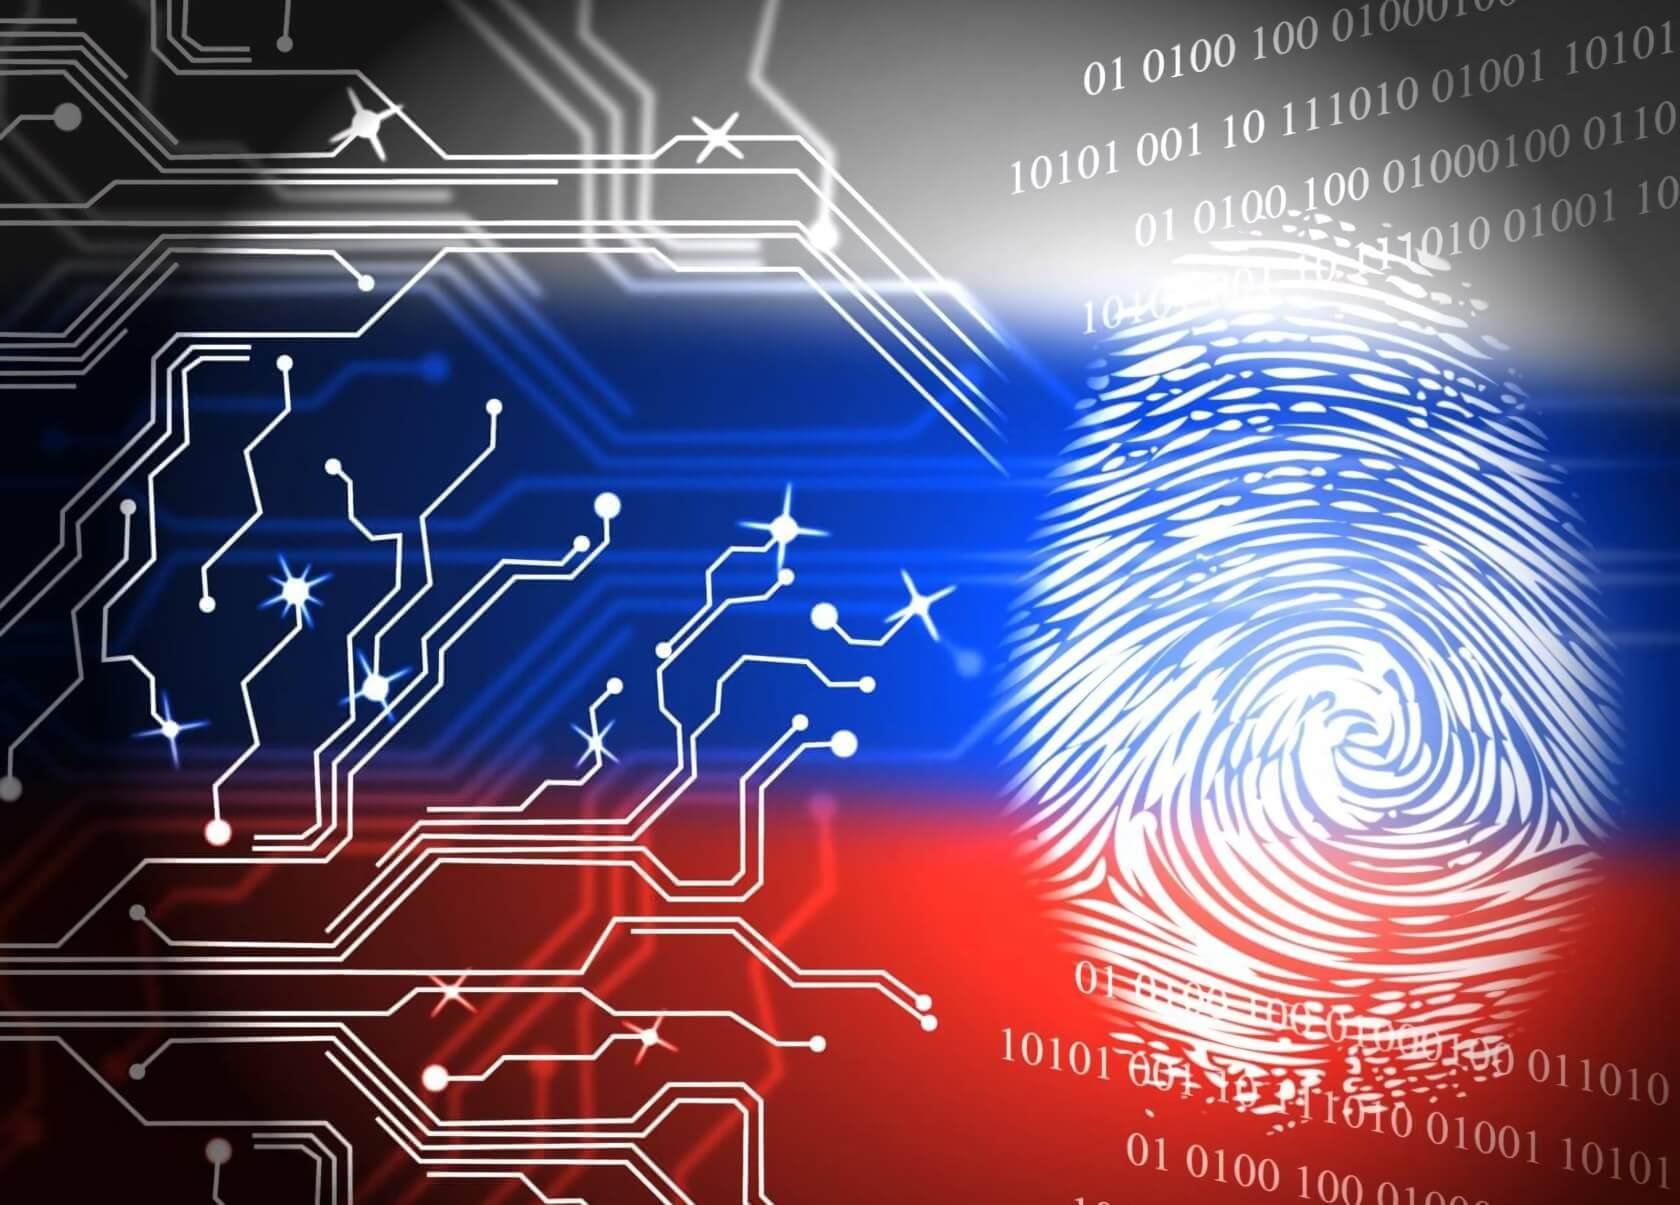 Putin signs bill to steer Russian net traffic away from foreign servers